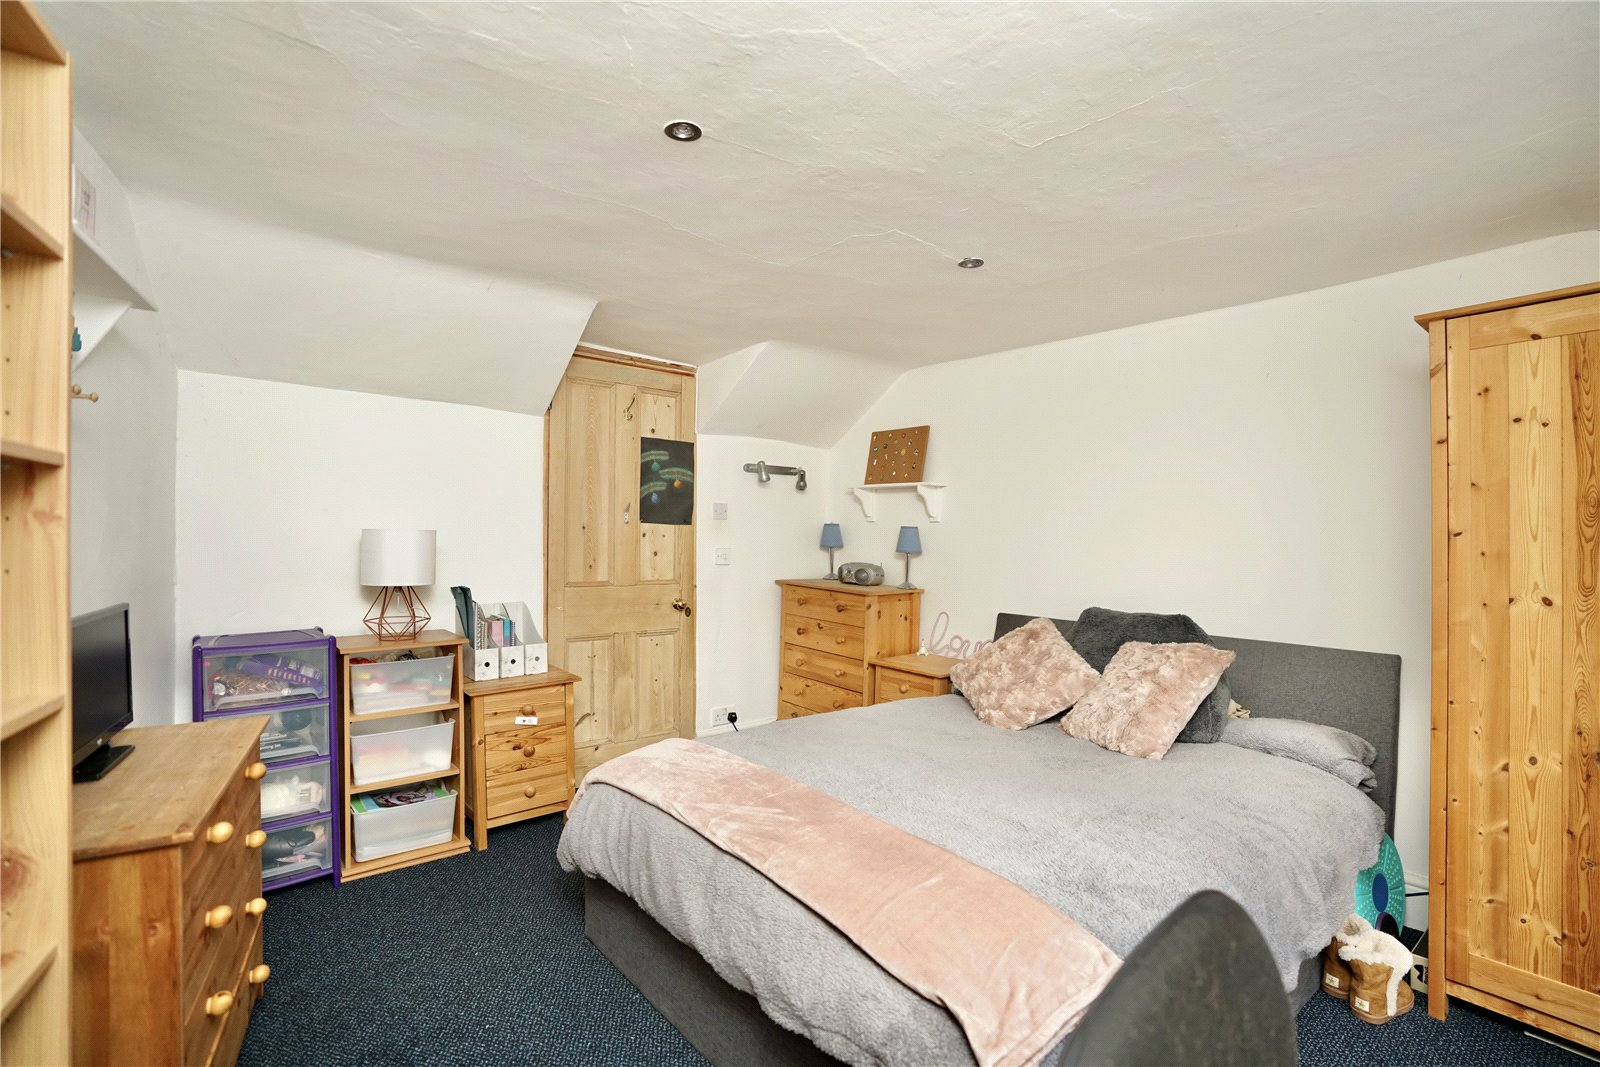 4 bed for sale in The Town, Great Staughton  - Property Image 11